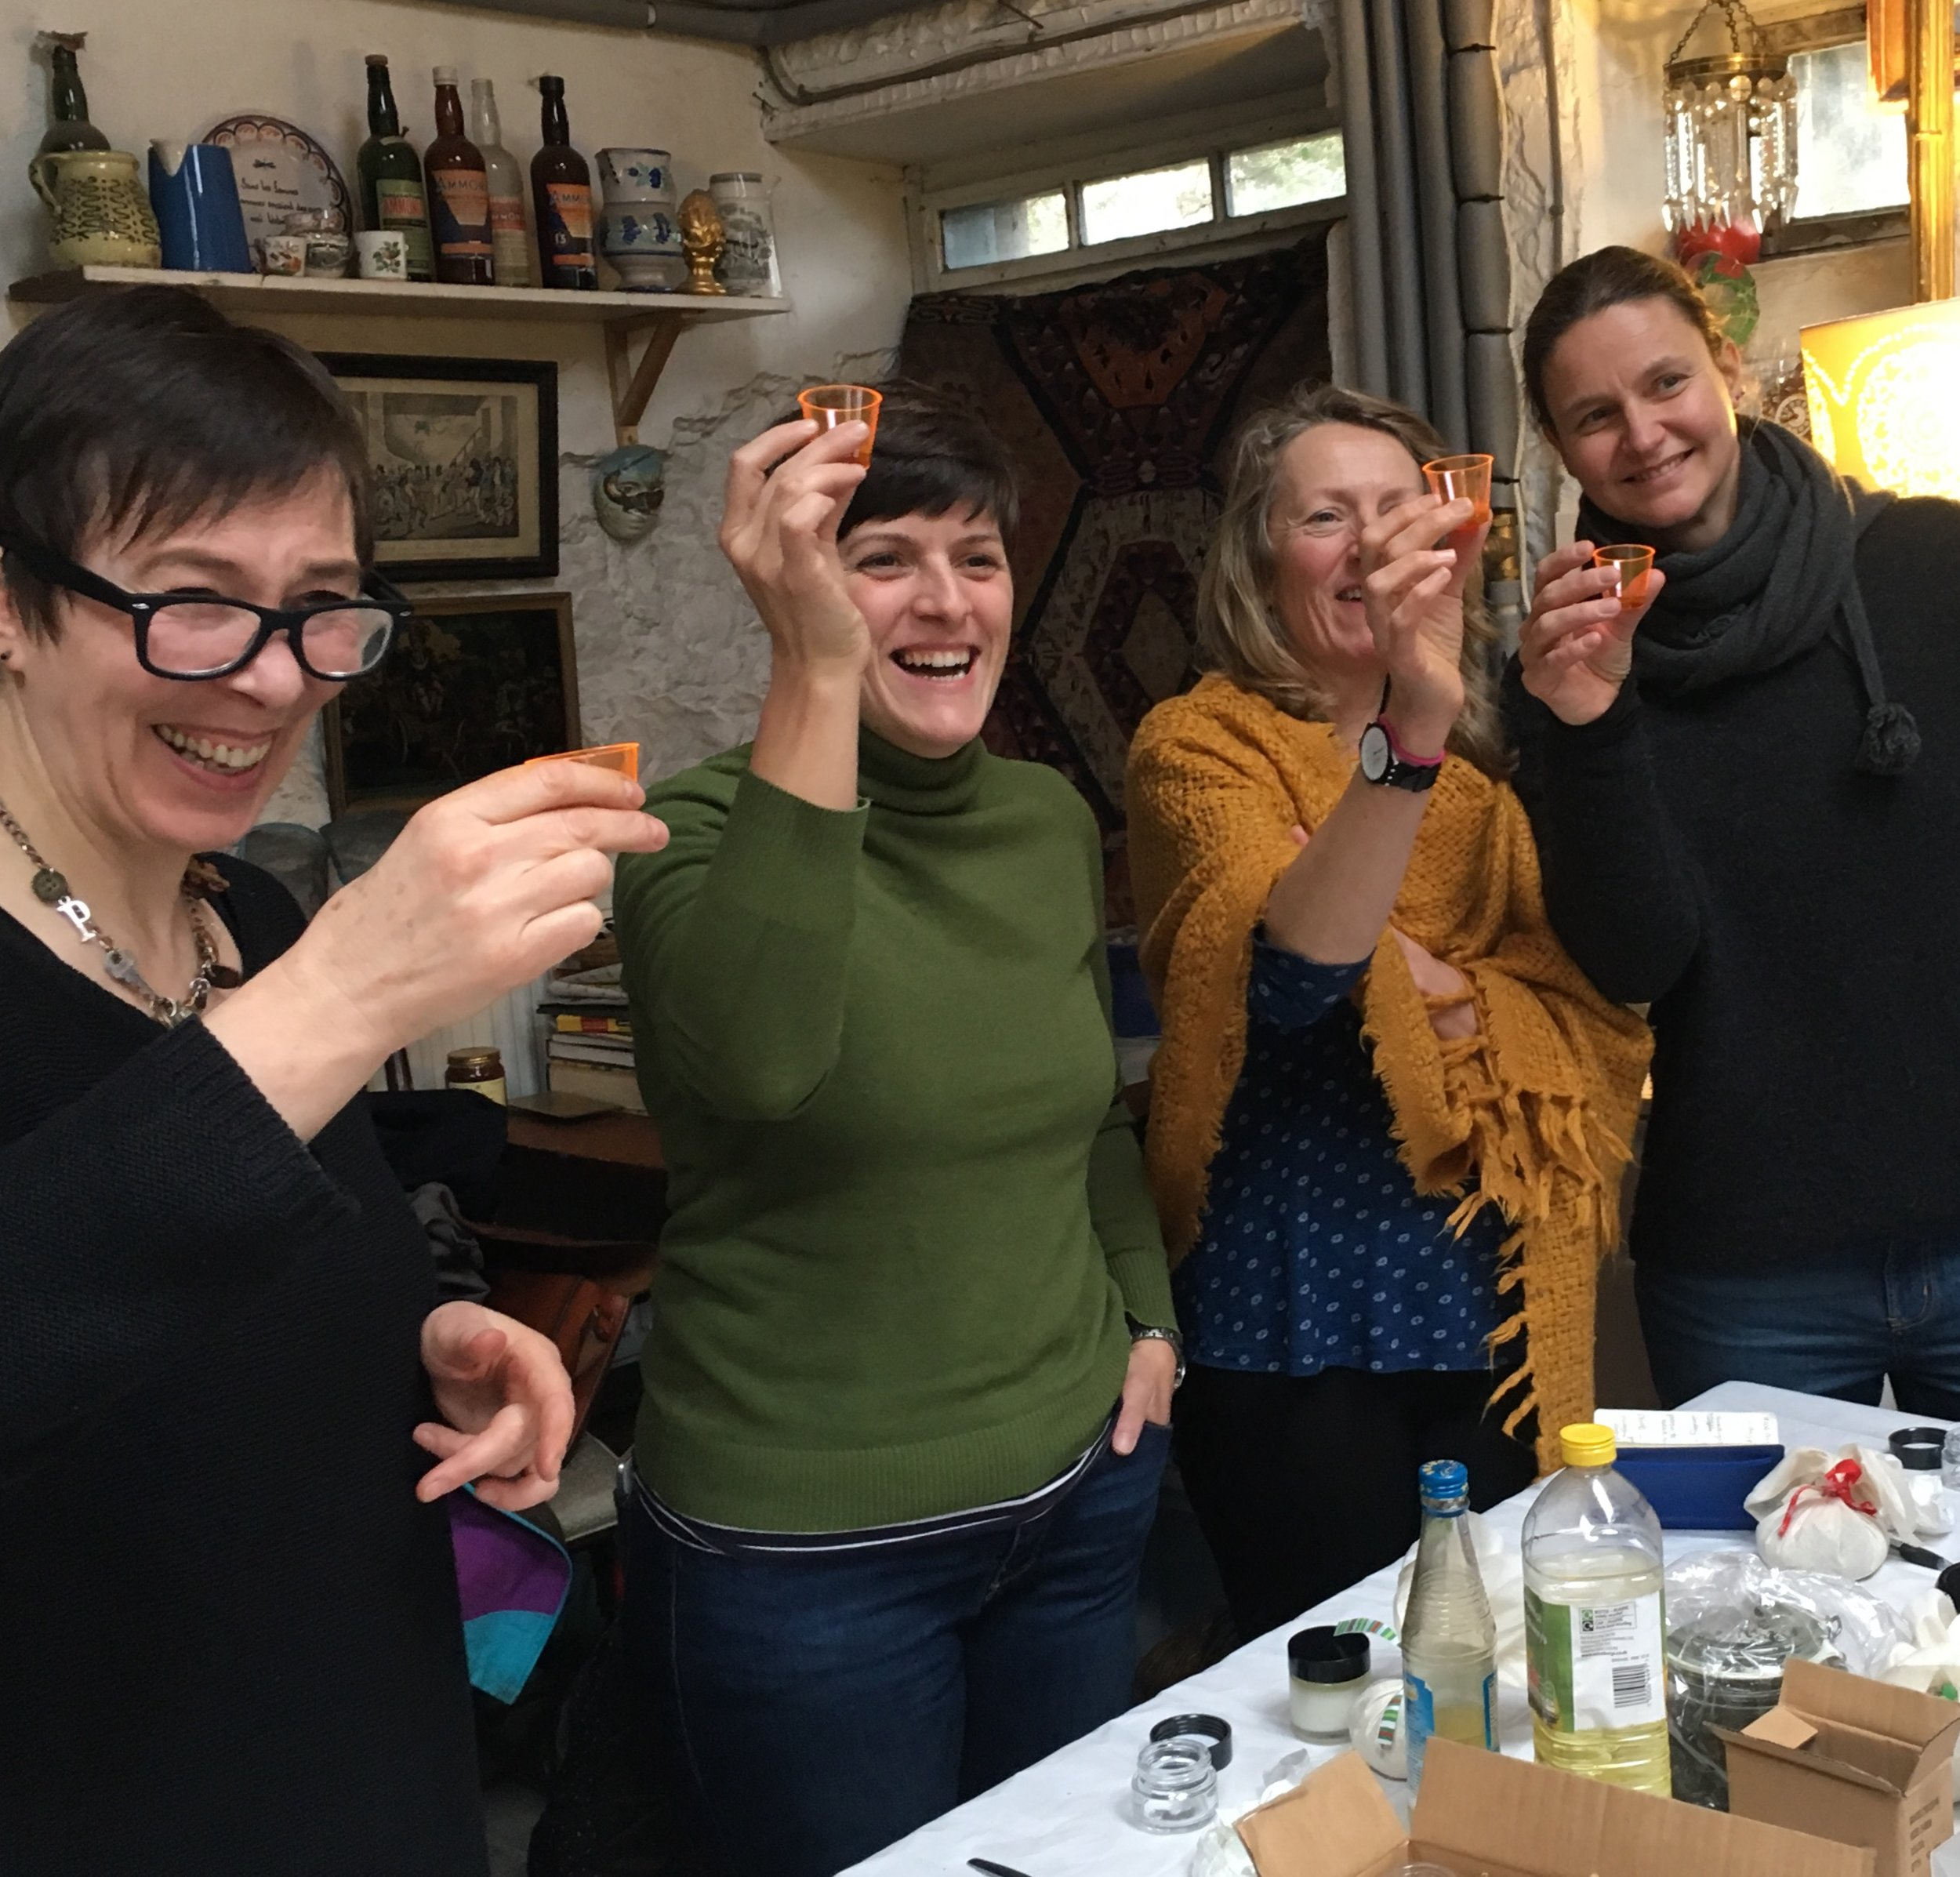 inspiring environment, Great people and conversation...Looking forward to the next workshop! - Barbara - Wild Seasons Winter workshop participant